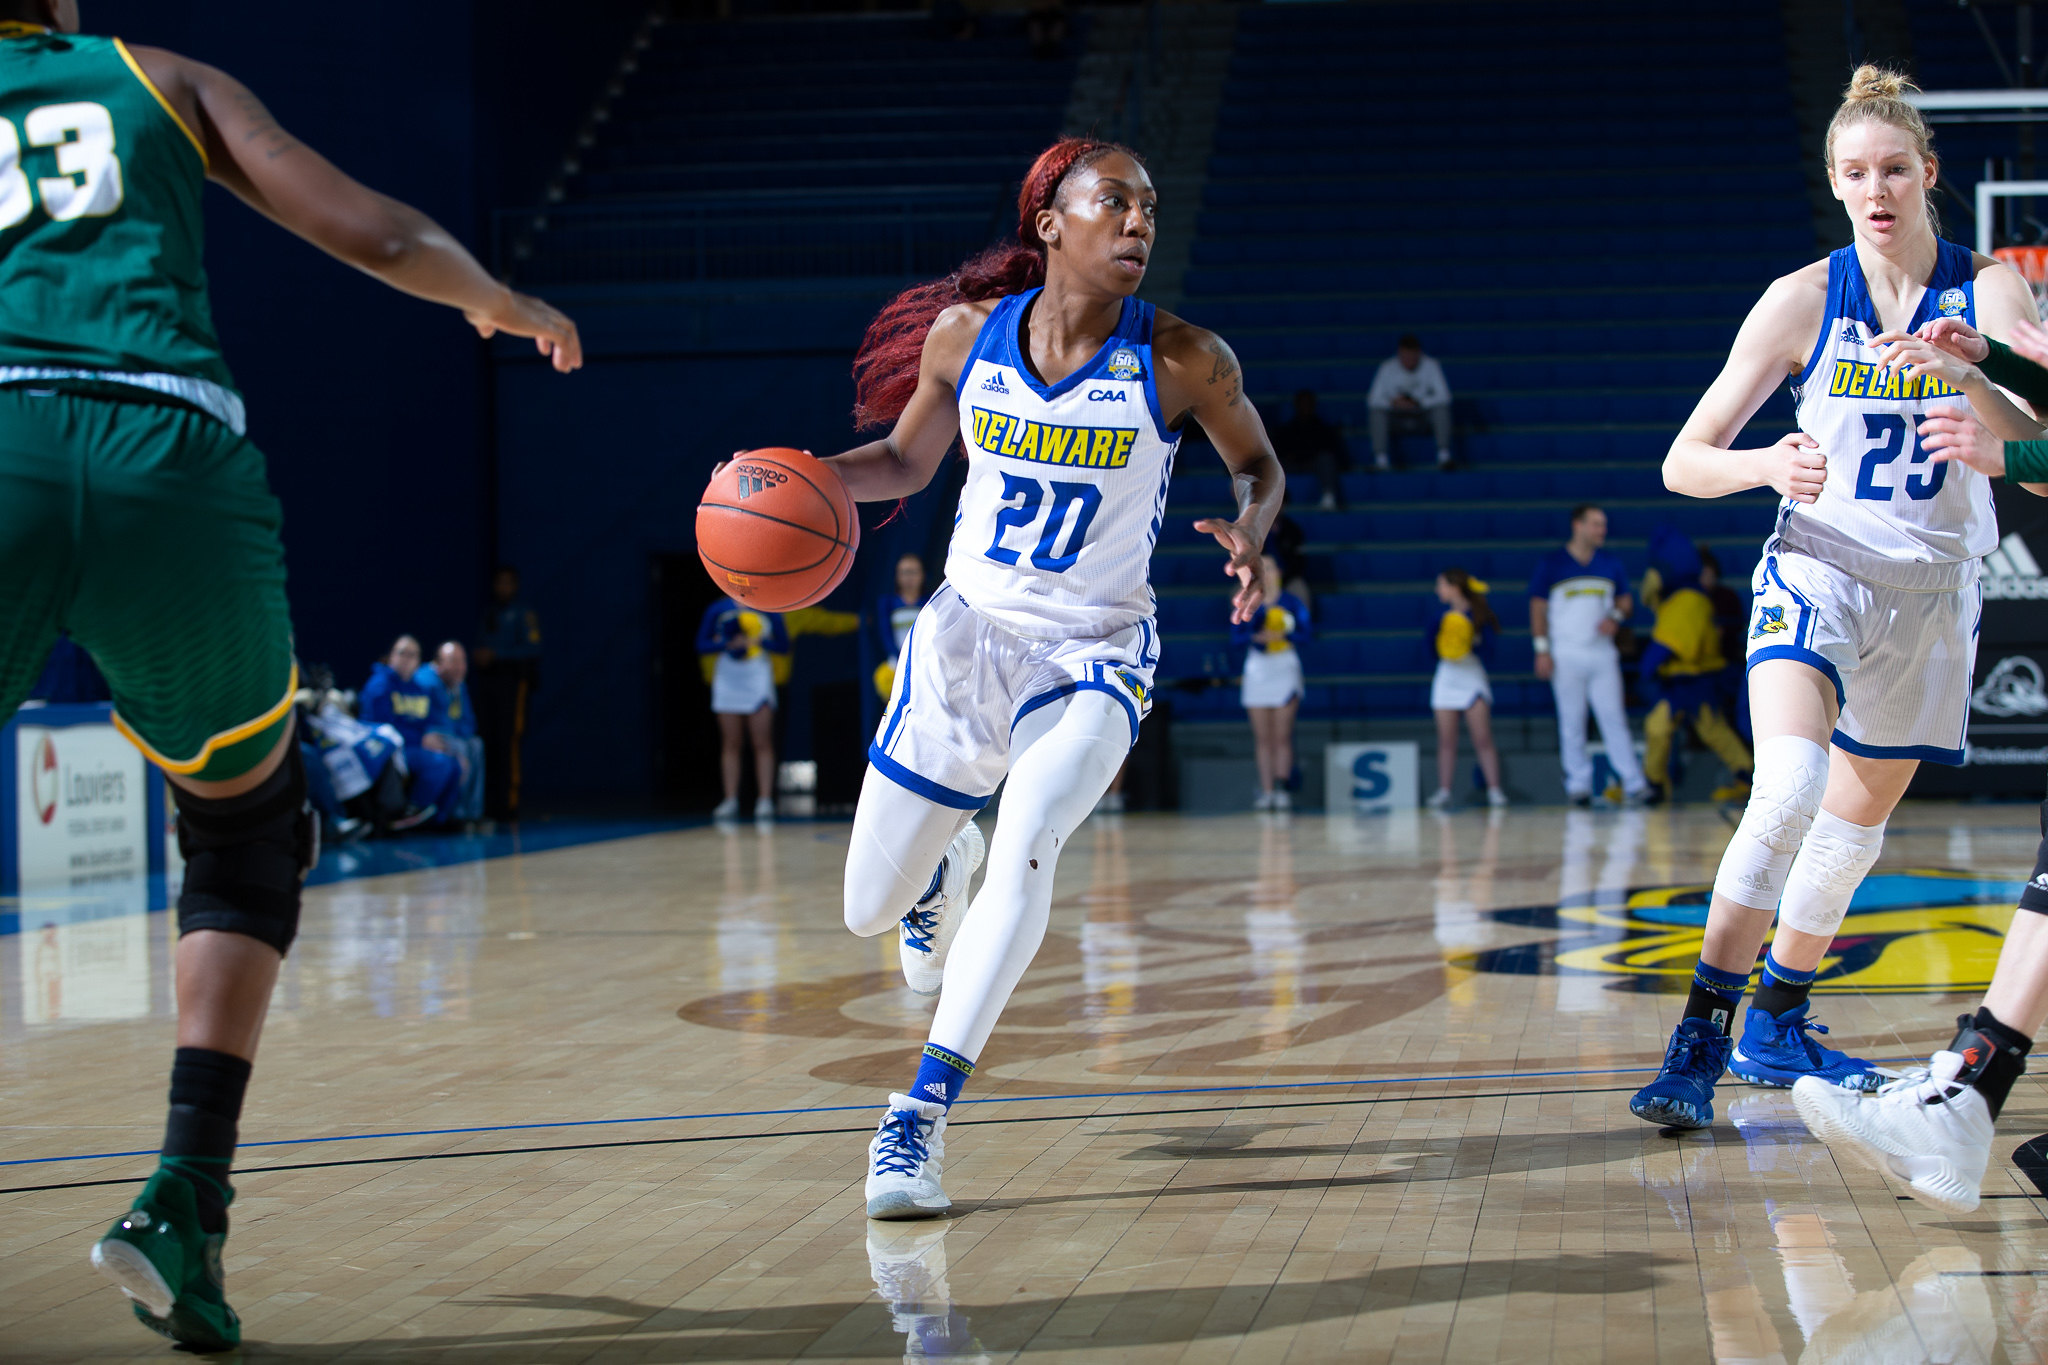 Critical stretch ahead for women's basketball